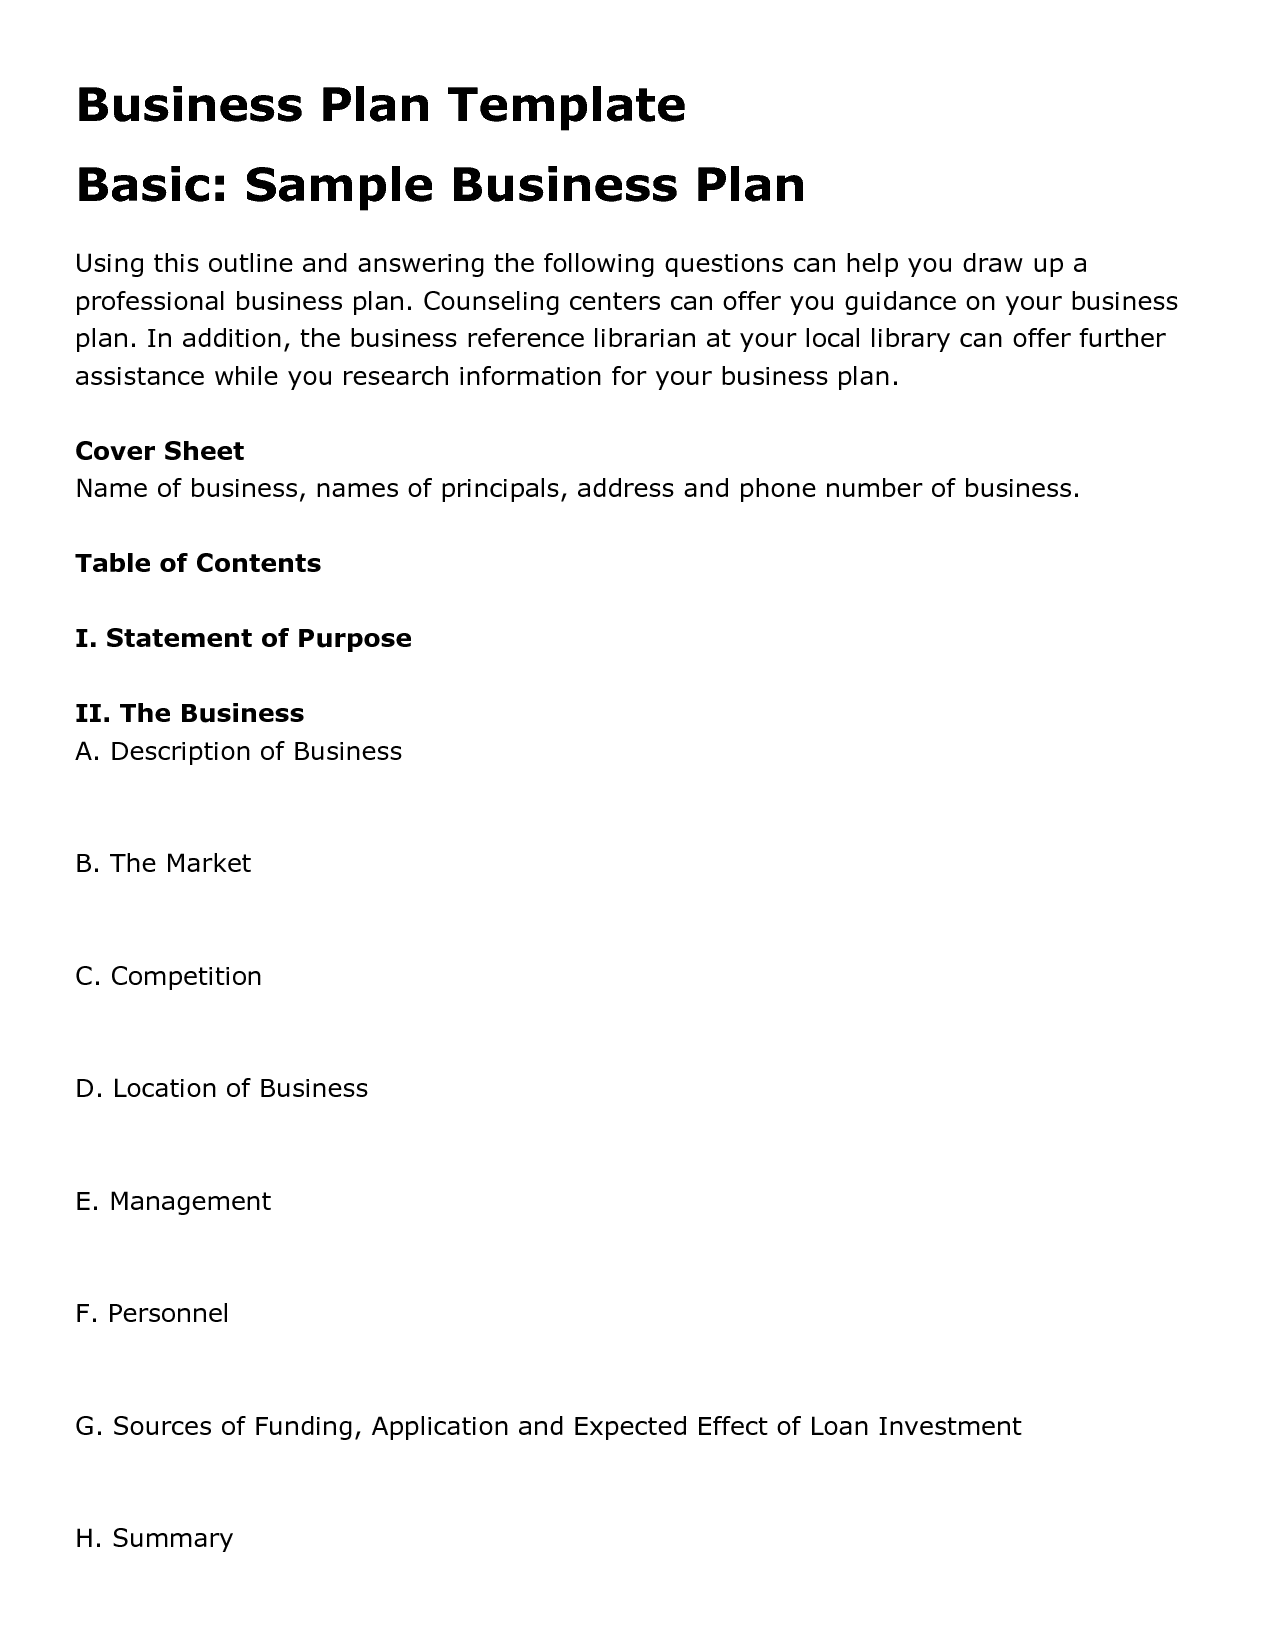 Simple Business Plan DESIGN ENTREPRENEUR Pinterest Simple - Simple business plan outline template